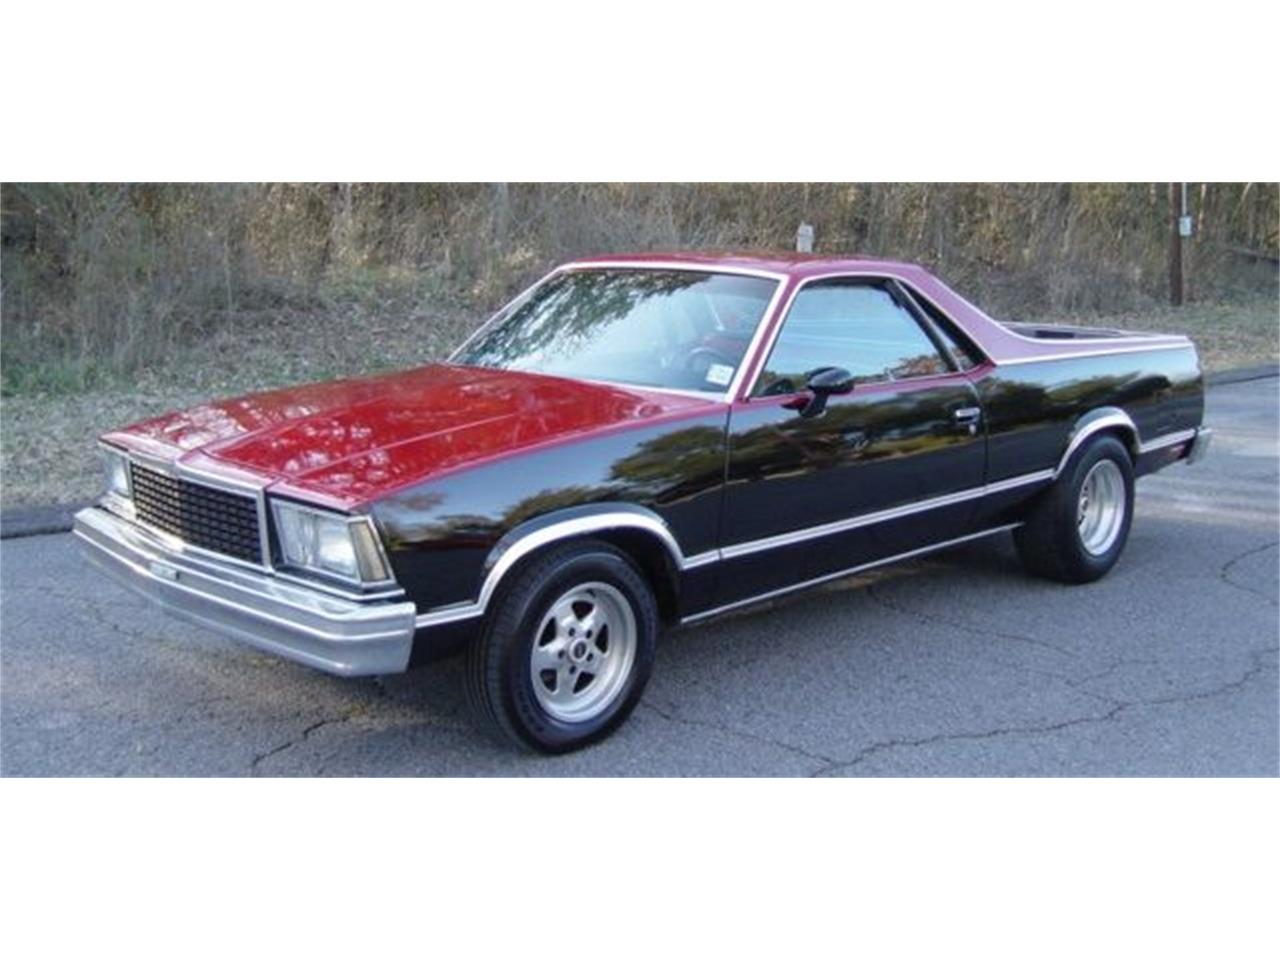 1979 Chevrolet El Camino (CC-1330716) for sale in Hendersonville, Tennessee